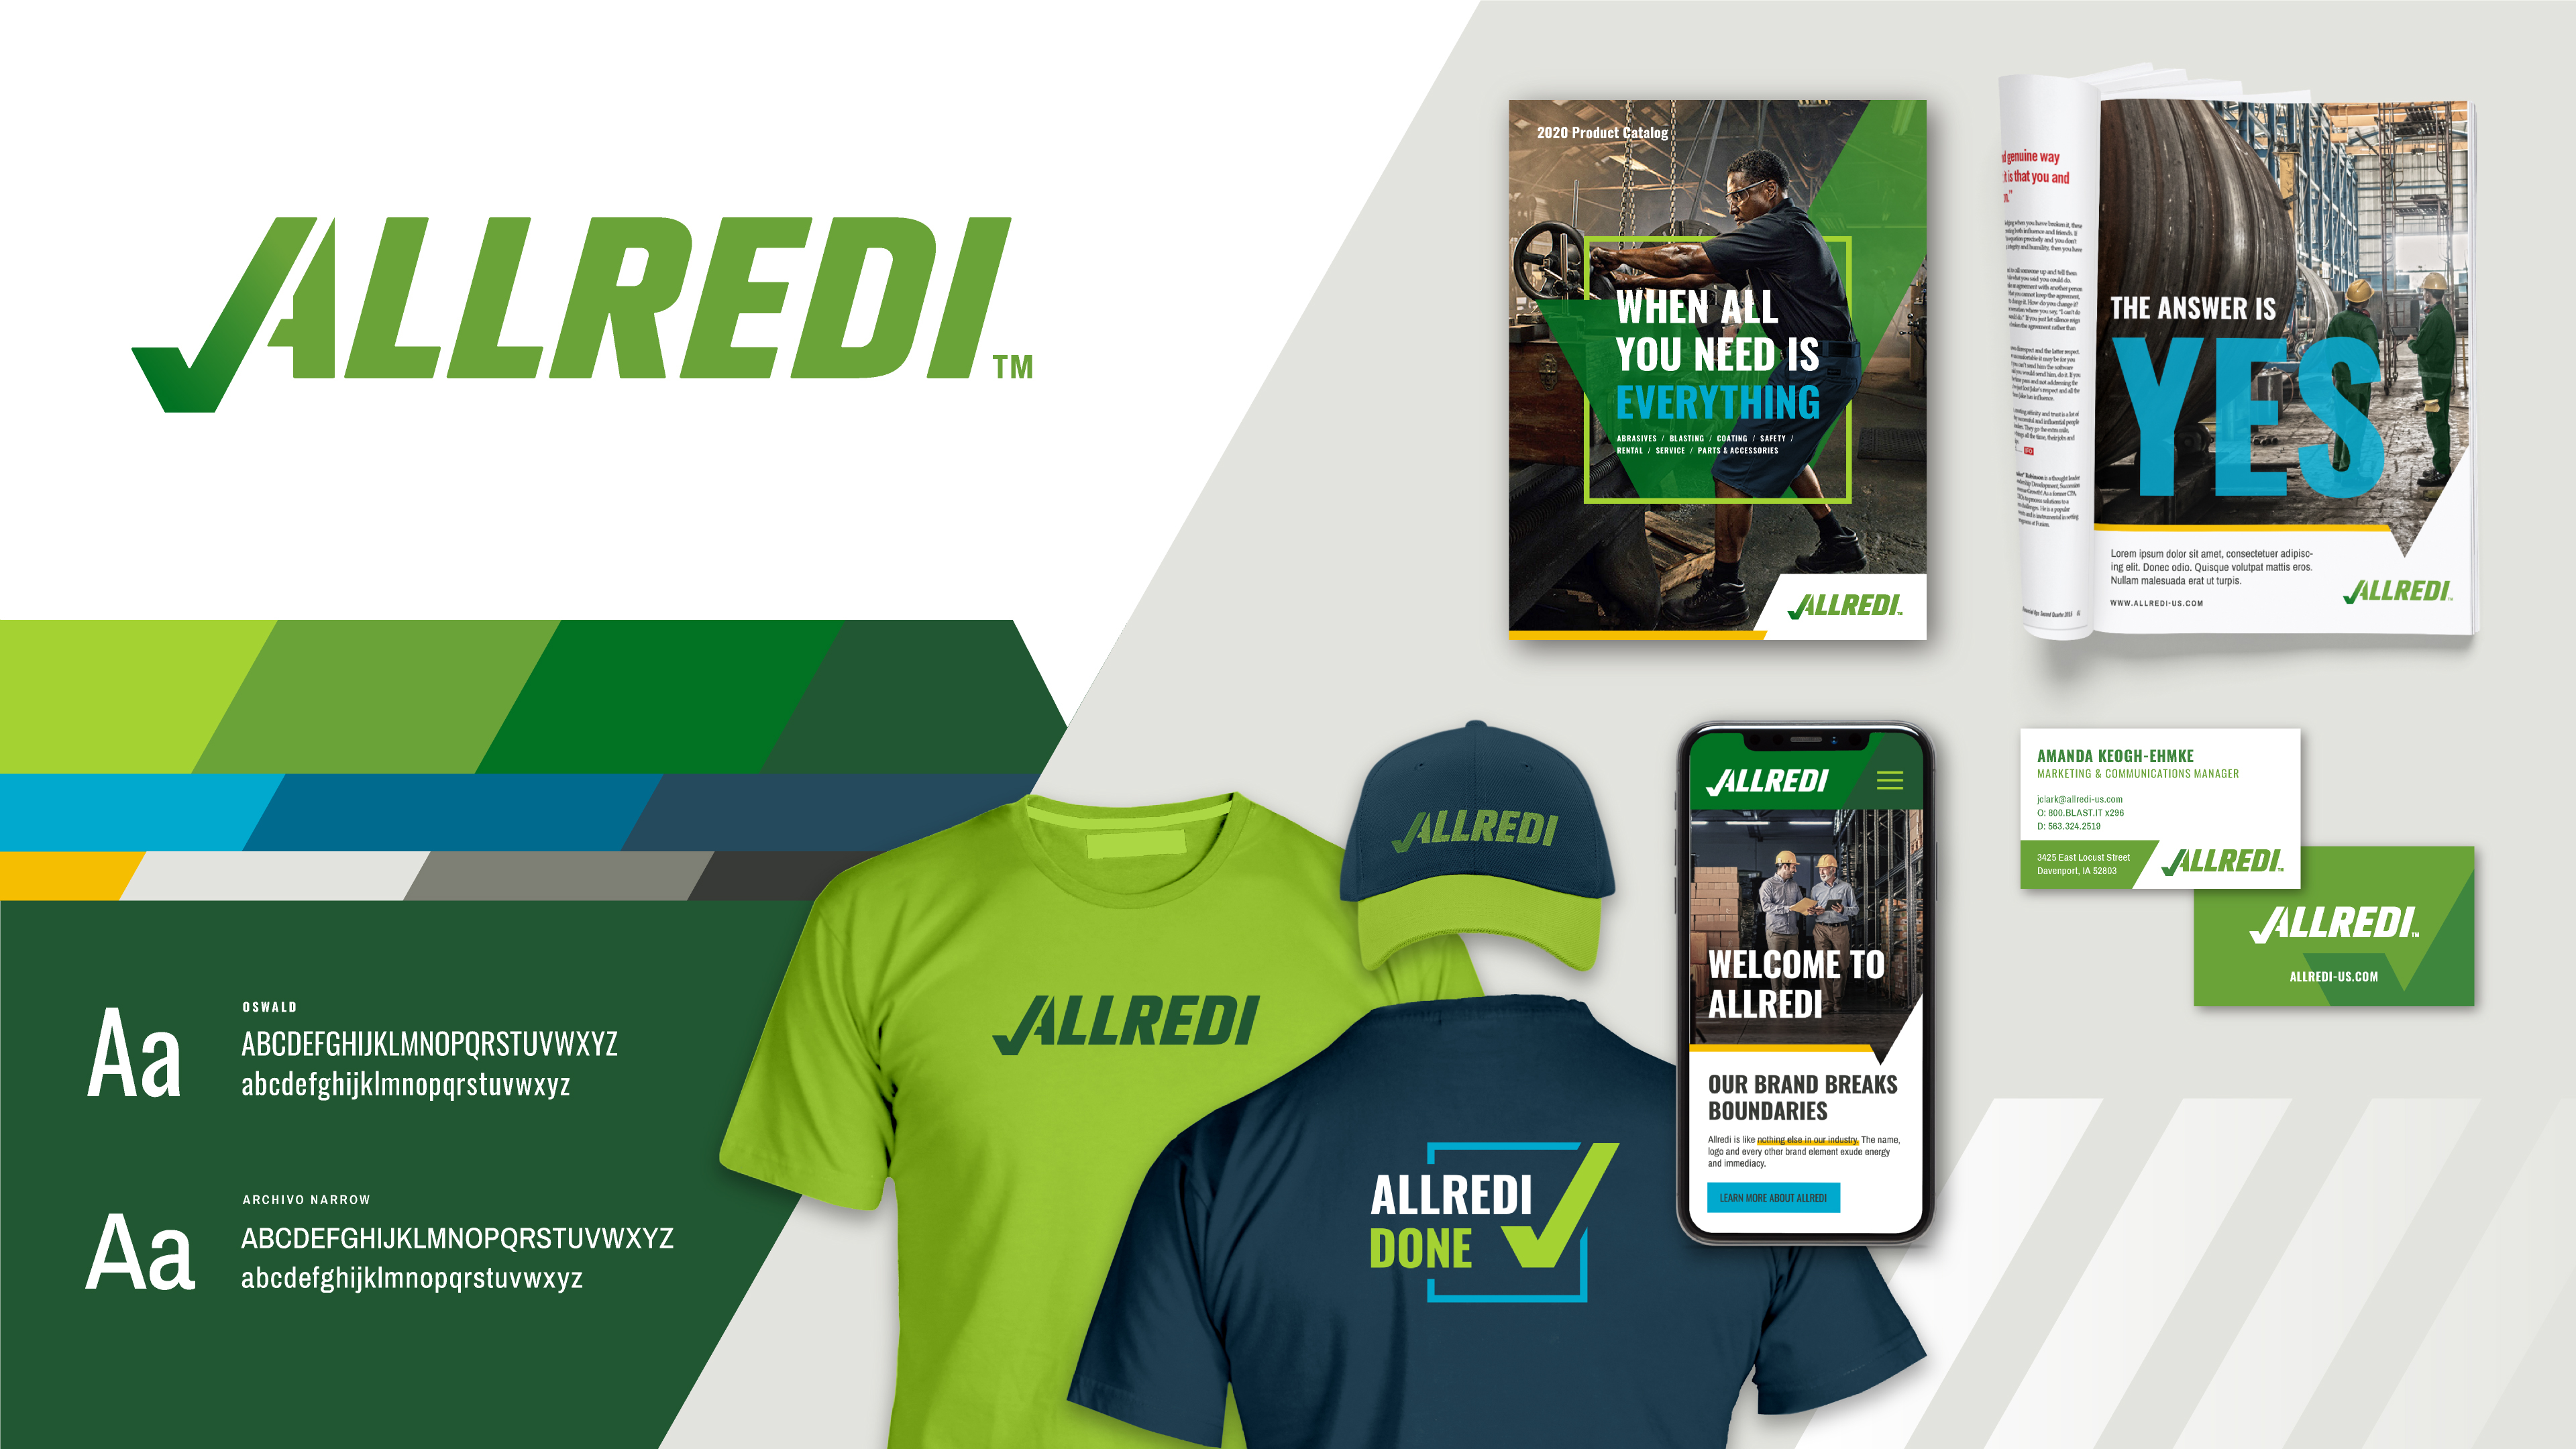 A brand board detailing how to visually use the new Allredi brand design including